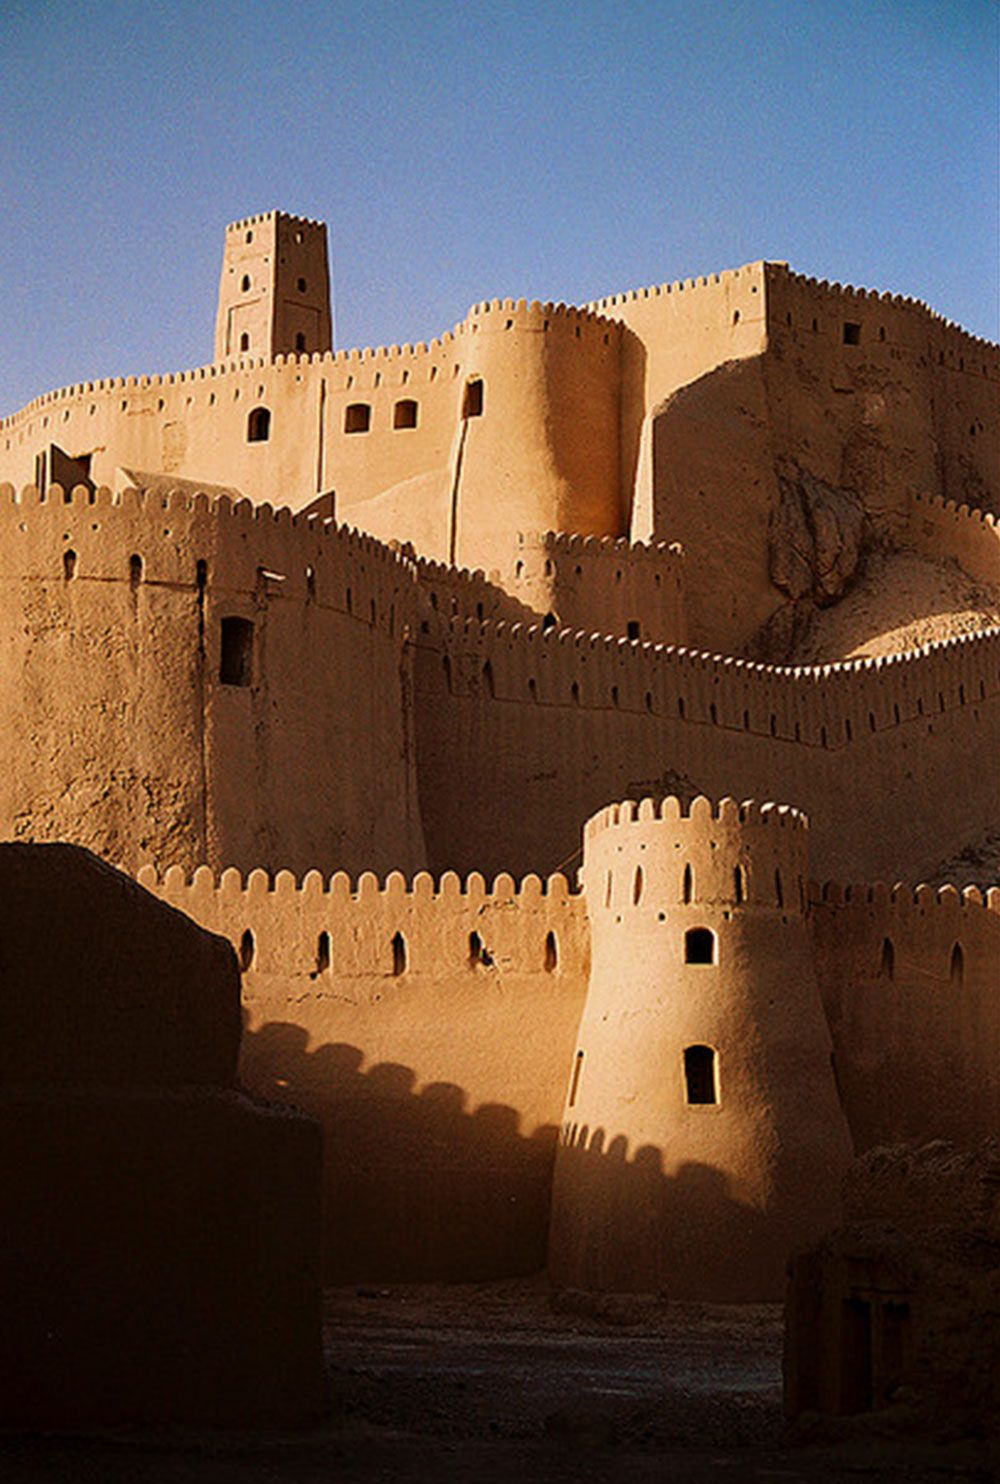 The Citadel Of Arg-E Bam The Worlds Largest Adobe -7925